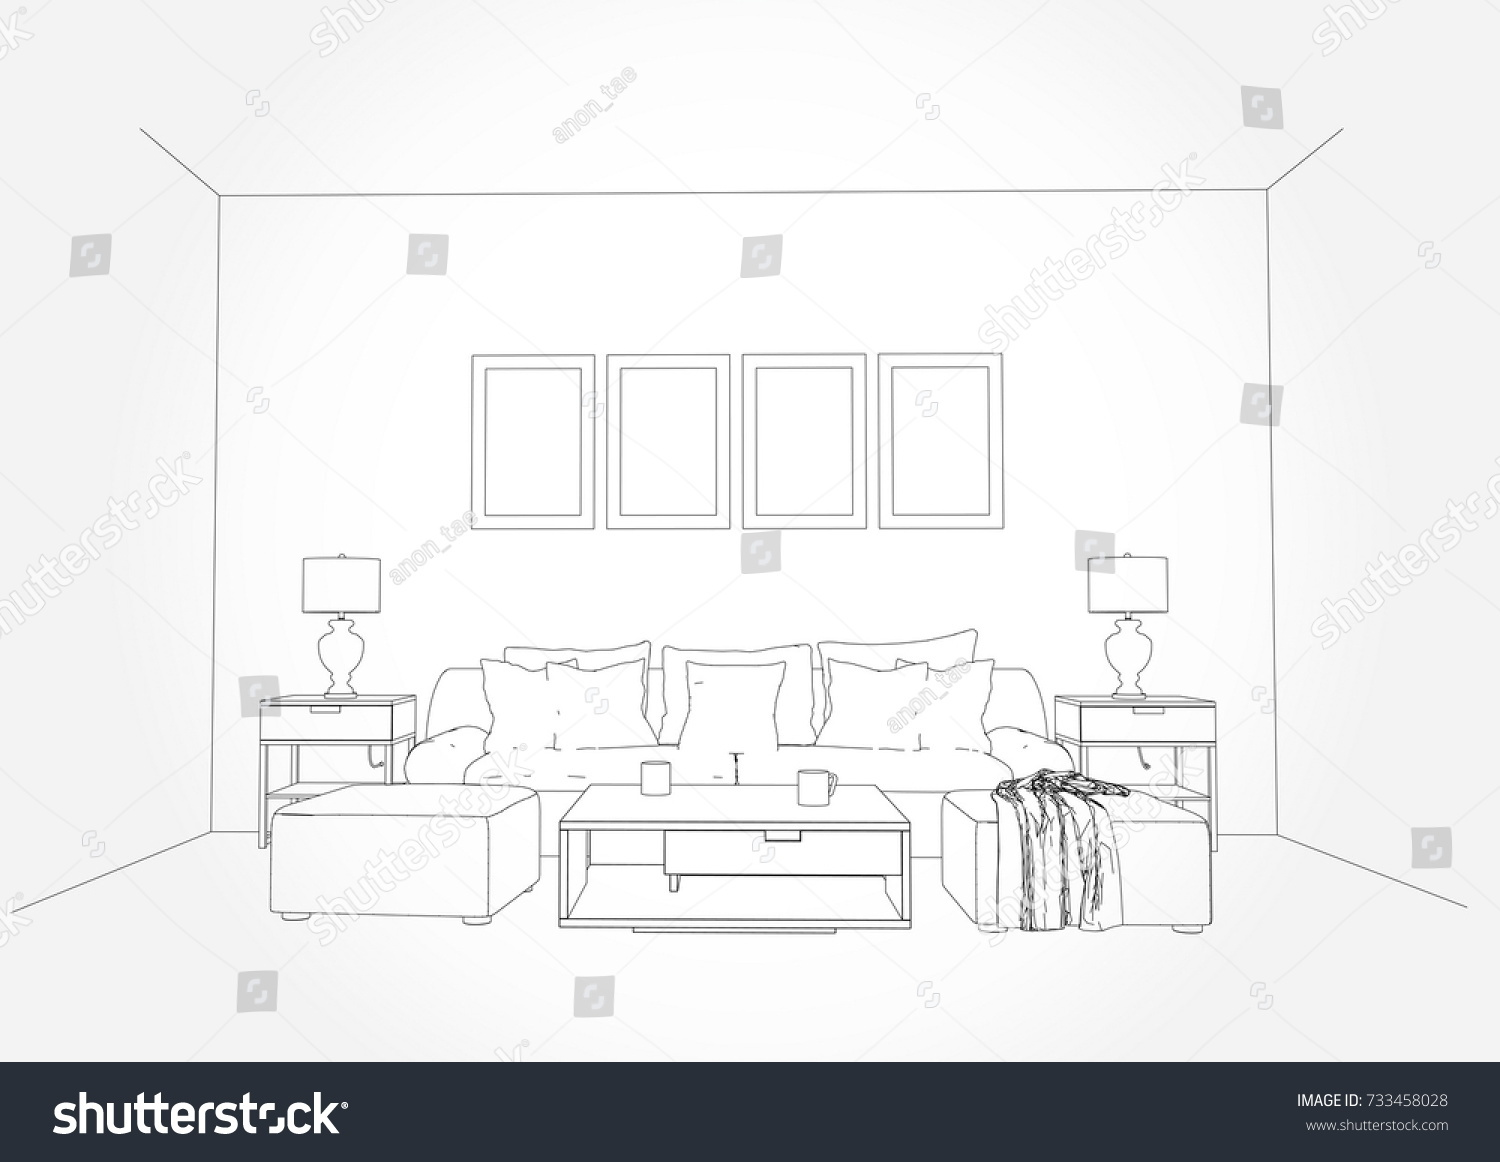 Linear Sketch Interior Living Room Plan Stock Vector 733458028 ...